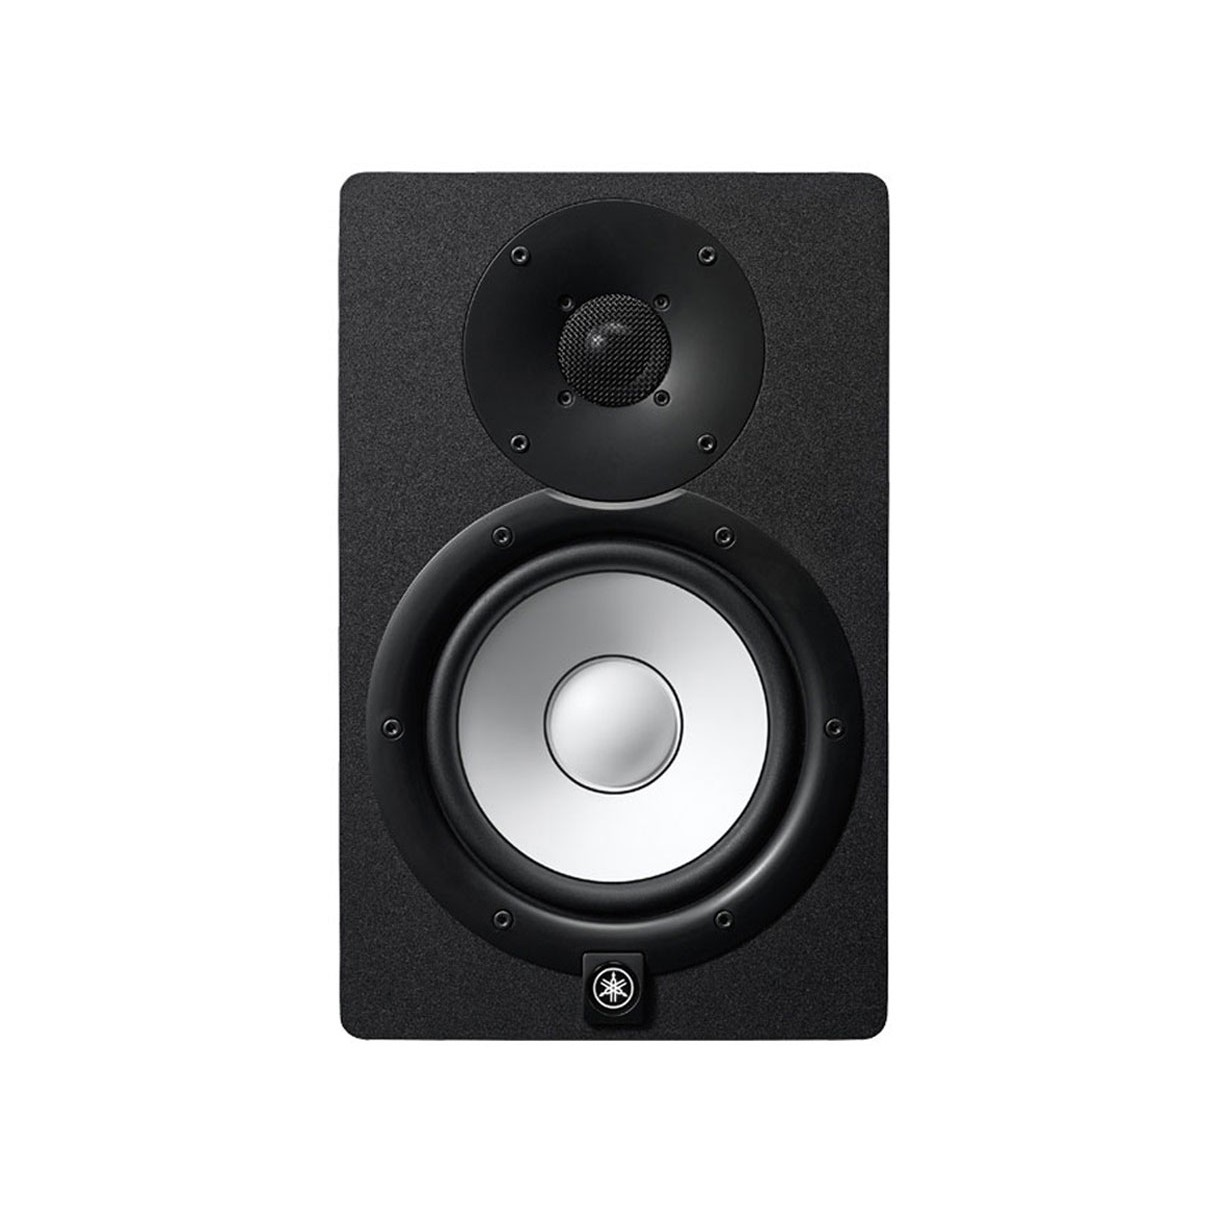 2x Yamaha HS7 + ISO-PUCK 8-Pack